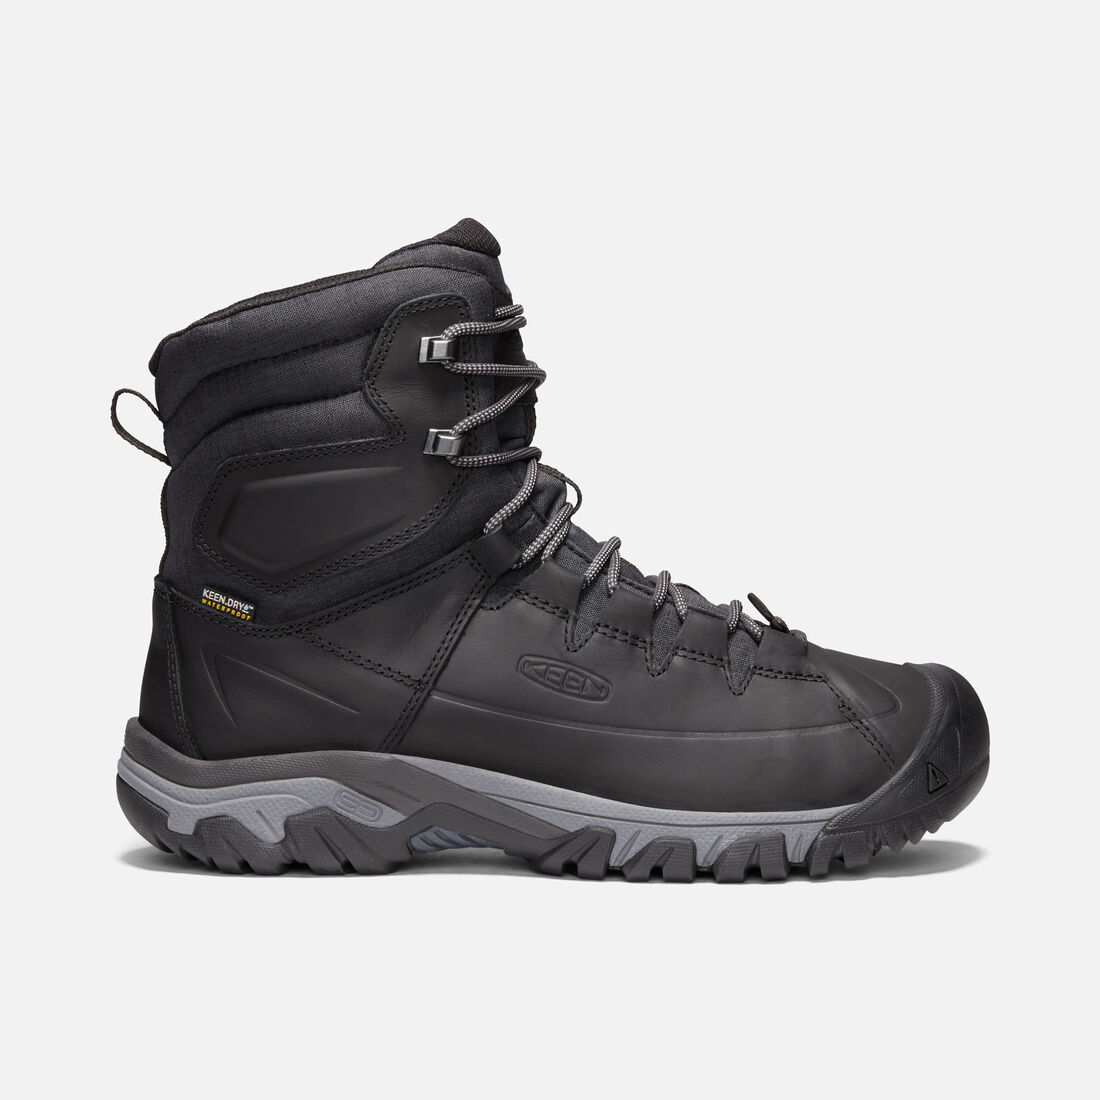 Men's Targhee High Lace Waterproof Boot in BLACK/RAVEN - large view.